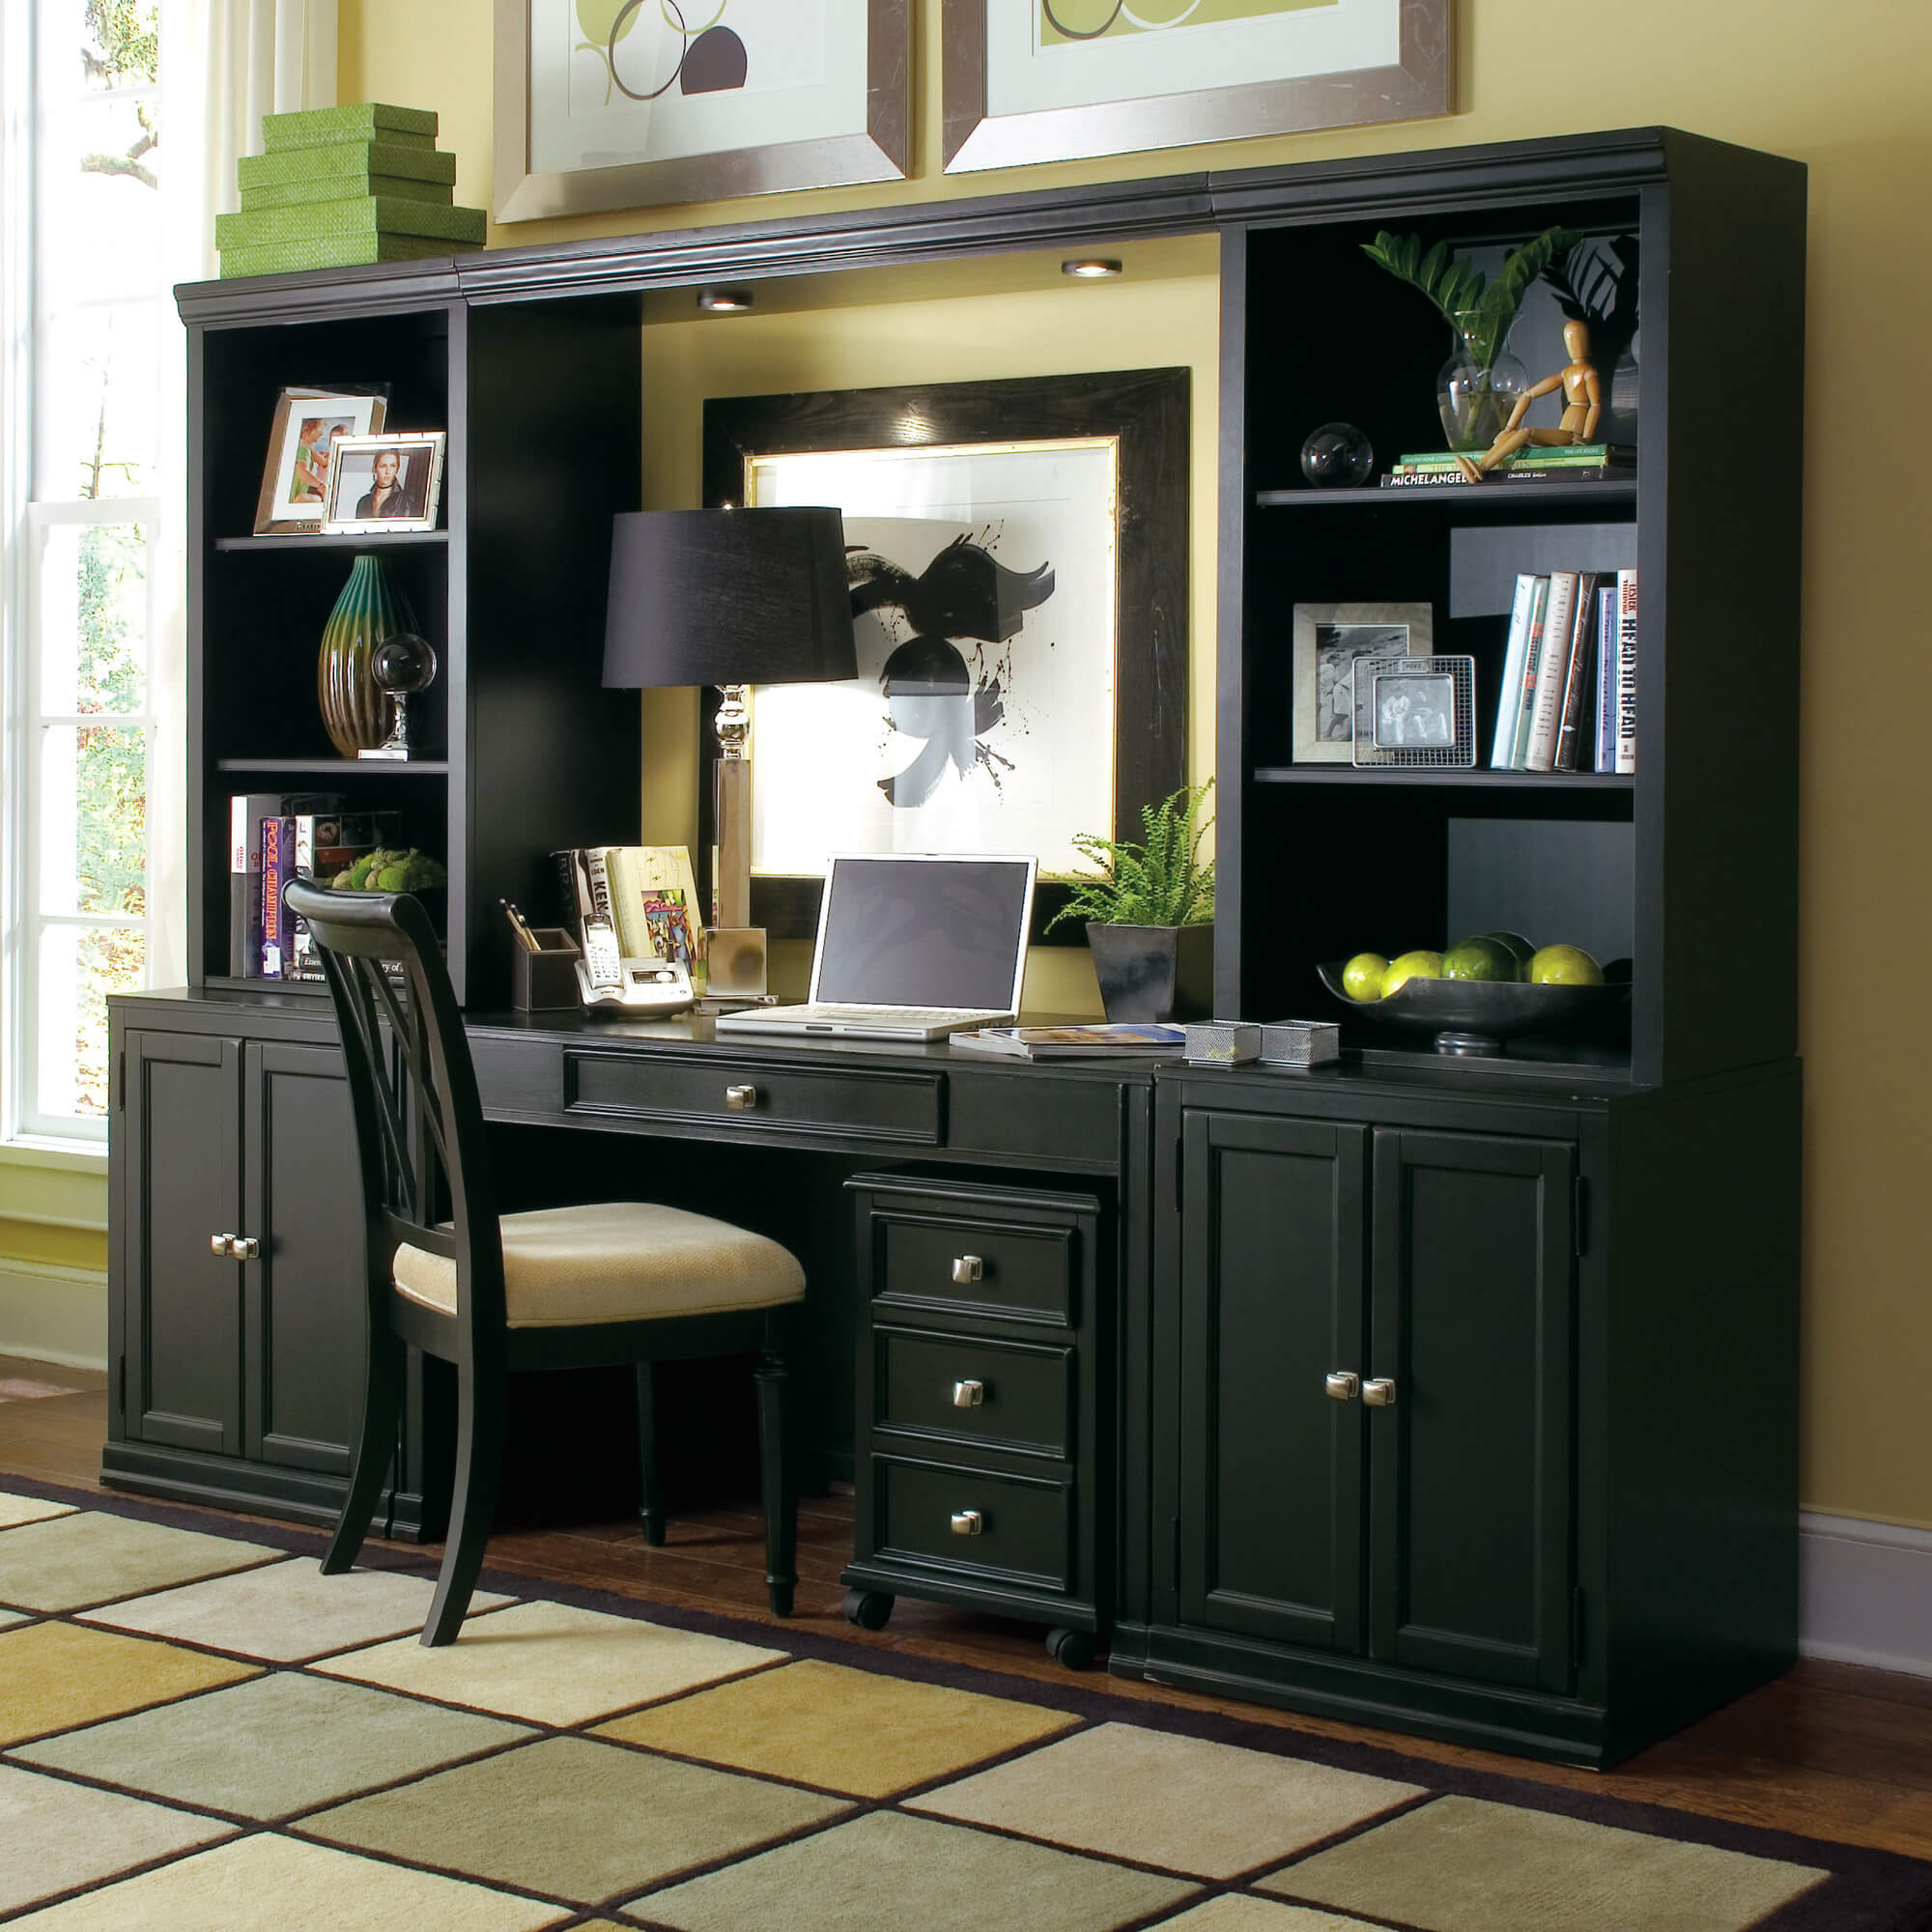 Credenza desks, as the name implies, combine a desk with a cupboard-packed credenza. This is a piece of furniture normally reserved for dining or living rooms, valued for its fashion and utility. When combined with a desk, you gain the benefits of both pieces of furniture, so long as you have the space to hold one.